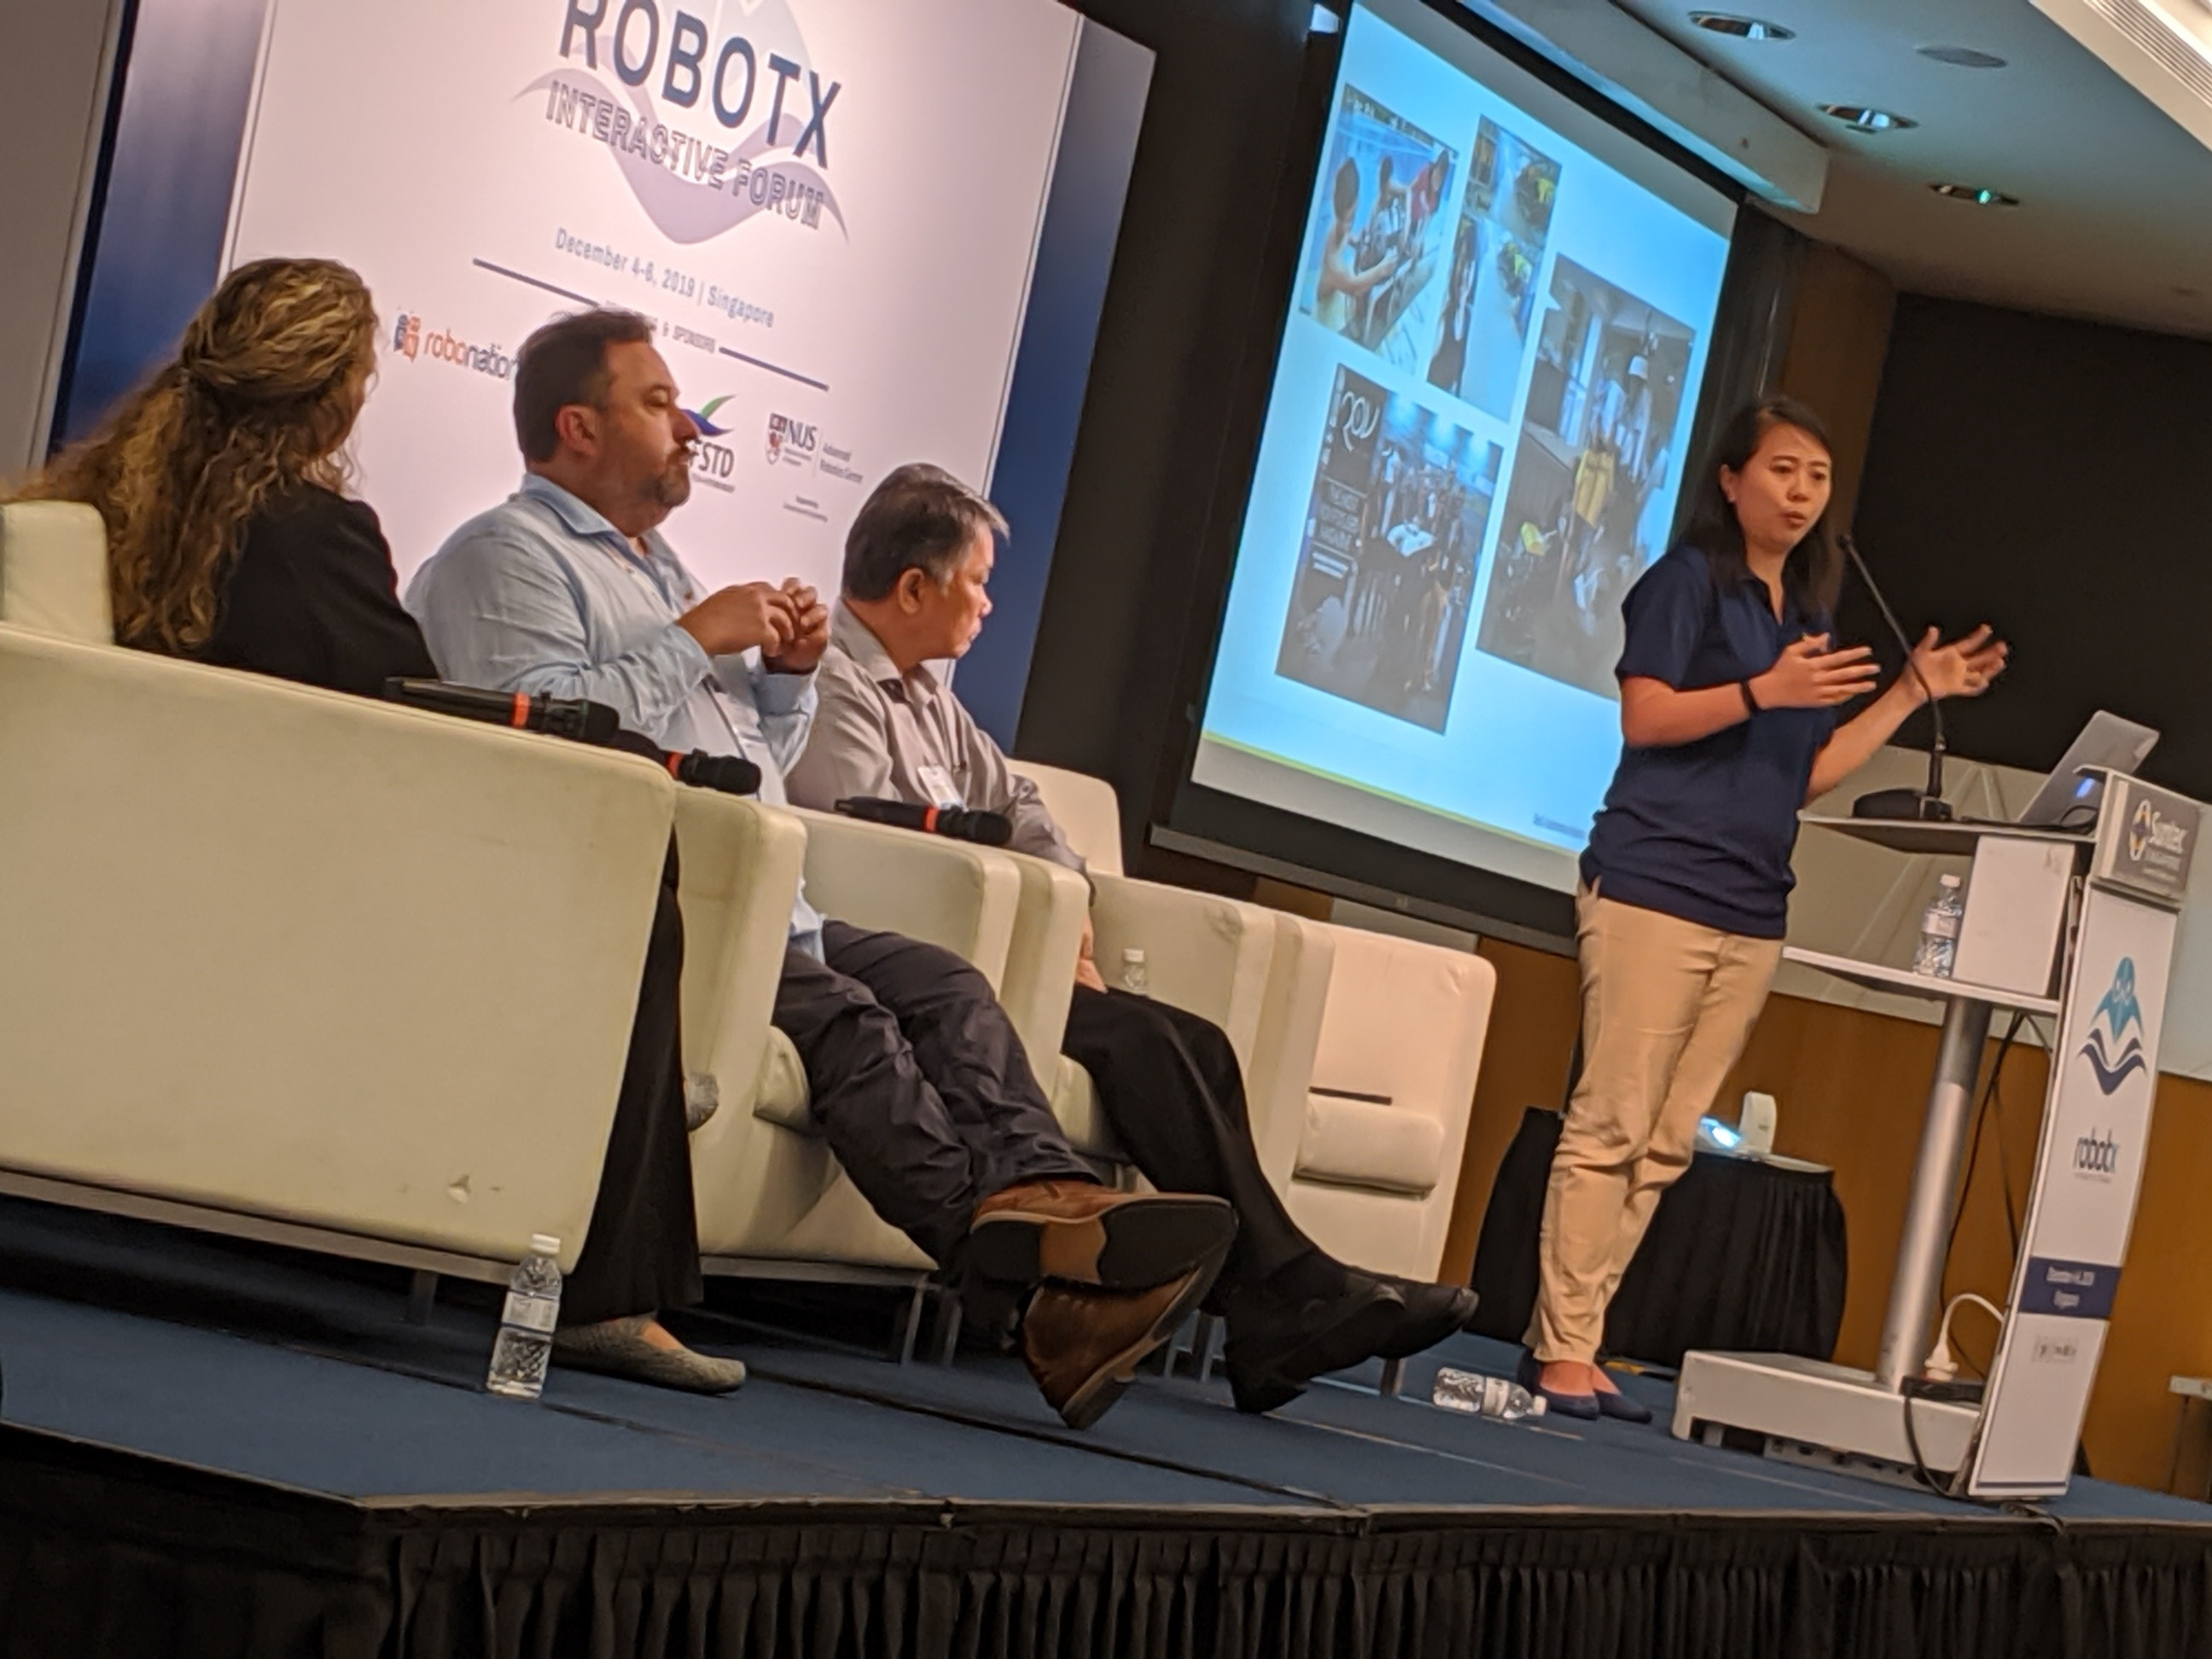 2019 RobotX Interactive Forum